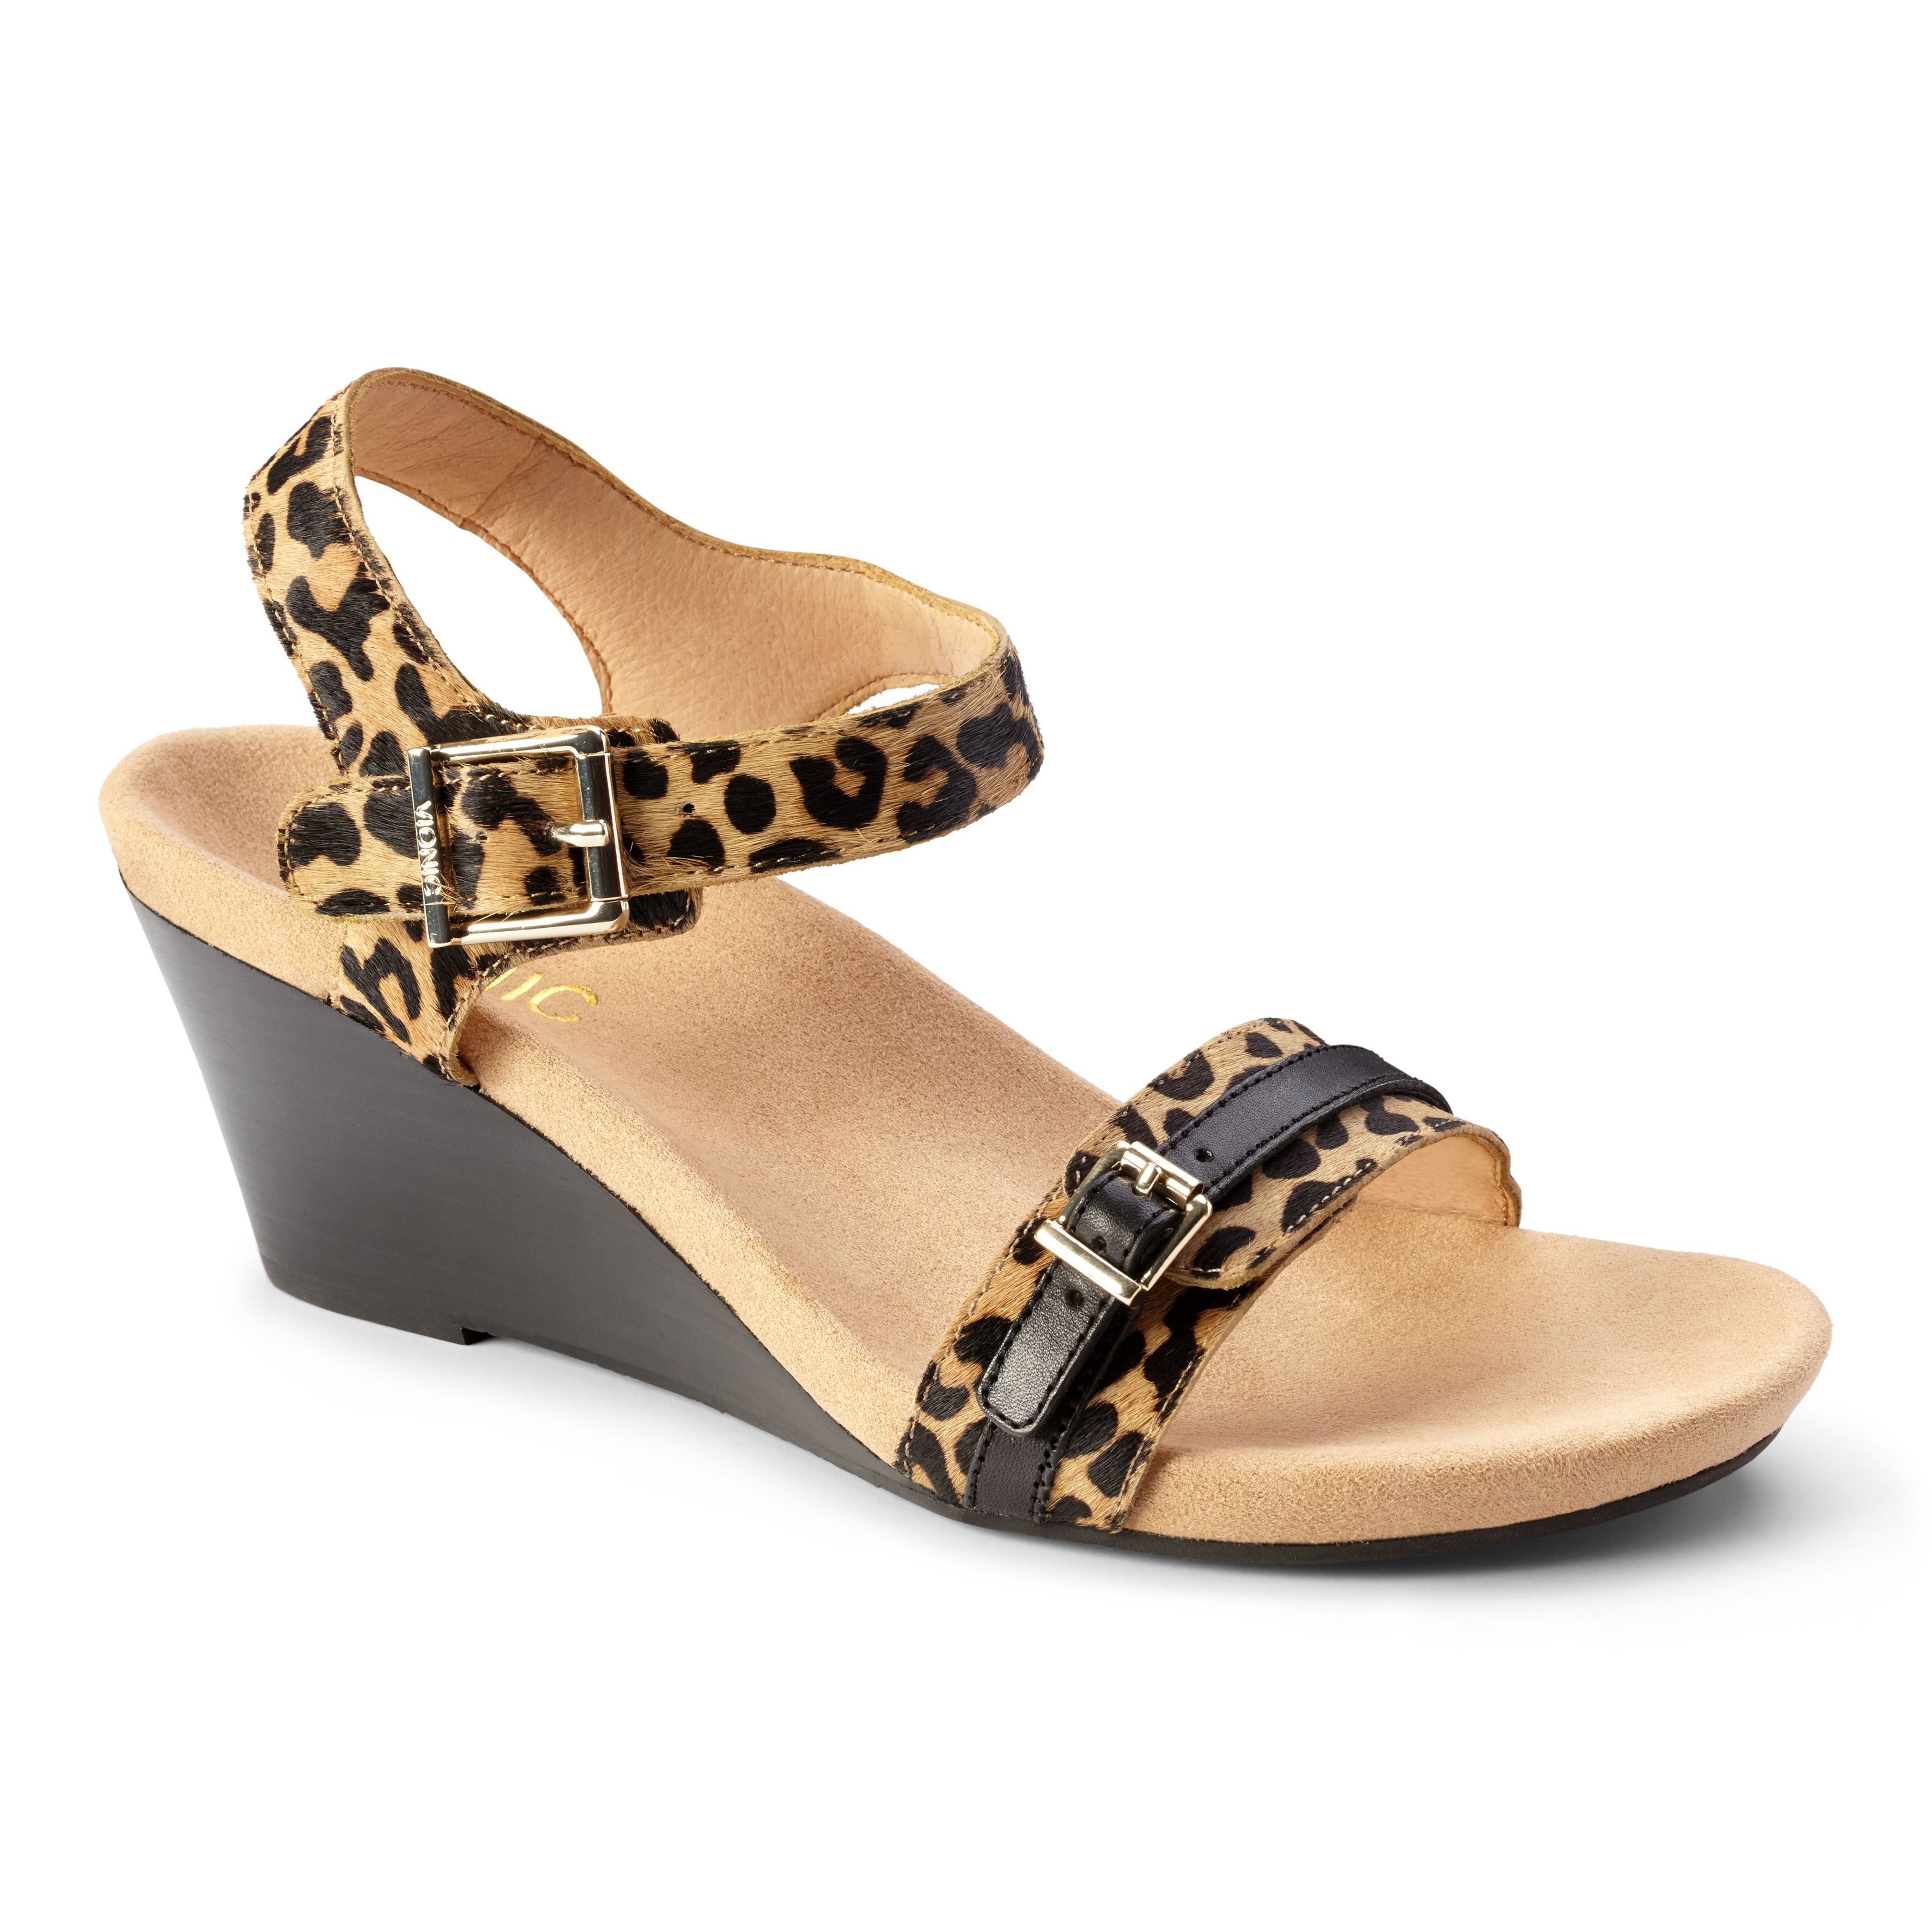 11c10524c465 Vionic Laurie wedge  Buckled straps across the vamp and ankle and a  gorgeous leather-wrapped heel make Laurie the quintessential summer wedge.